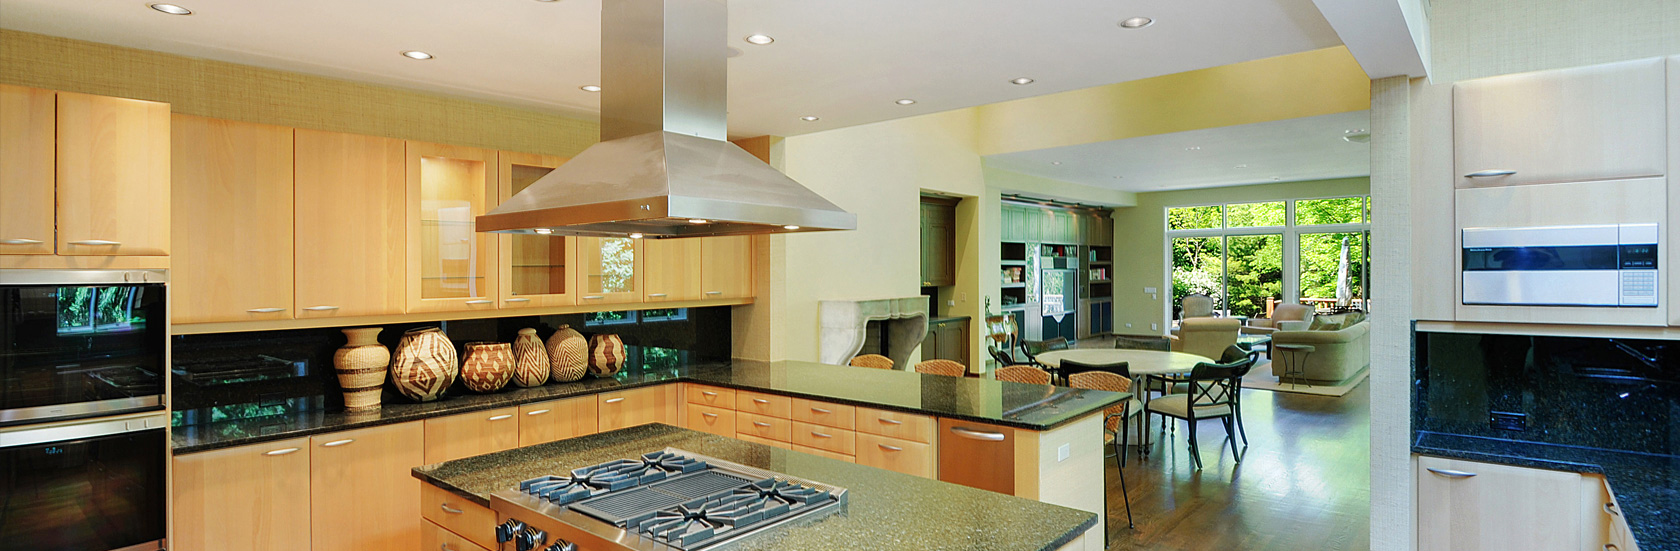 home remodeling tips in murrieta - kitchen granite countertops